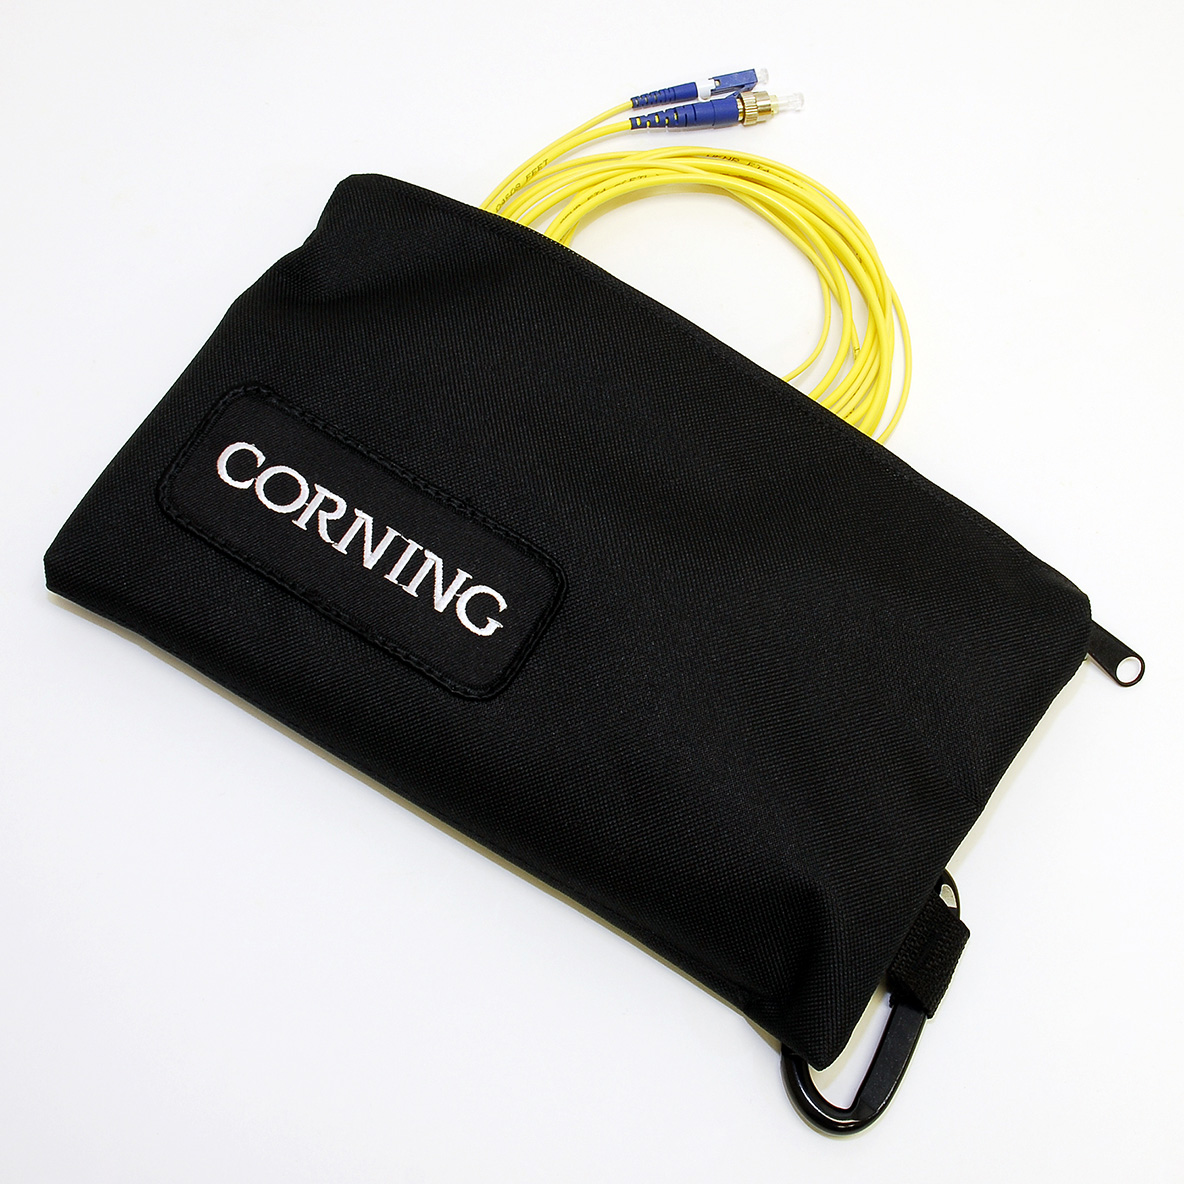 Corning Jumper or Cable Assembly